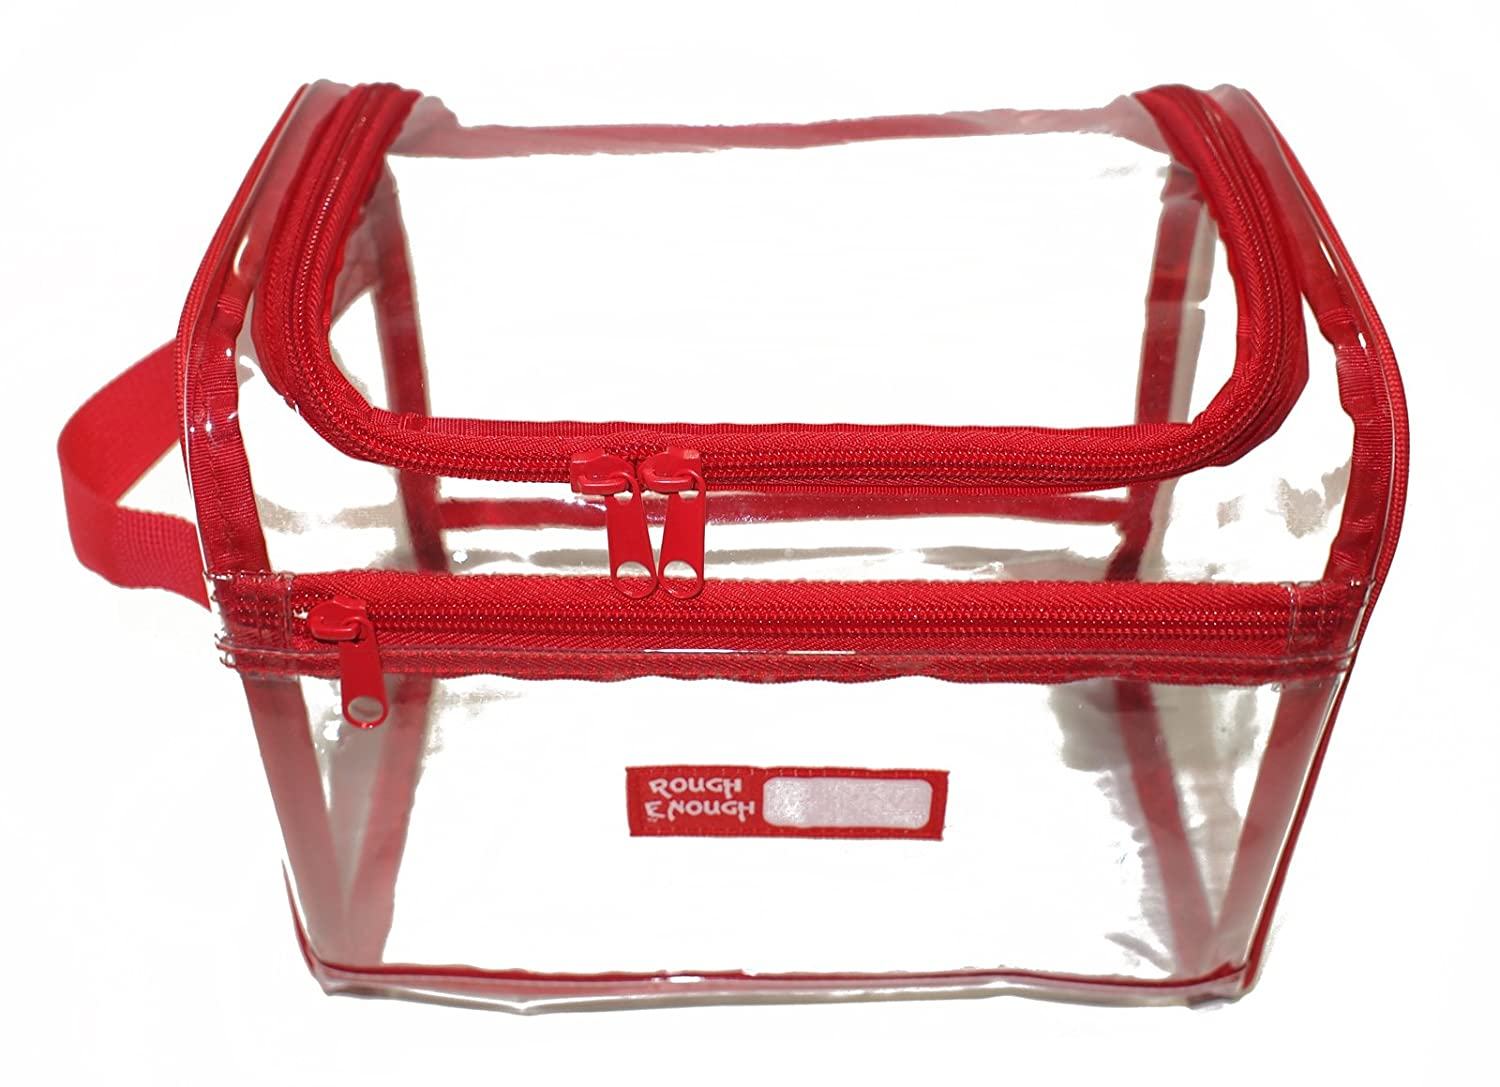 amazoncom rough enough tsa clear transparent large toiletry bag big volume red piping health u0026 personal care